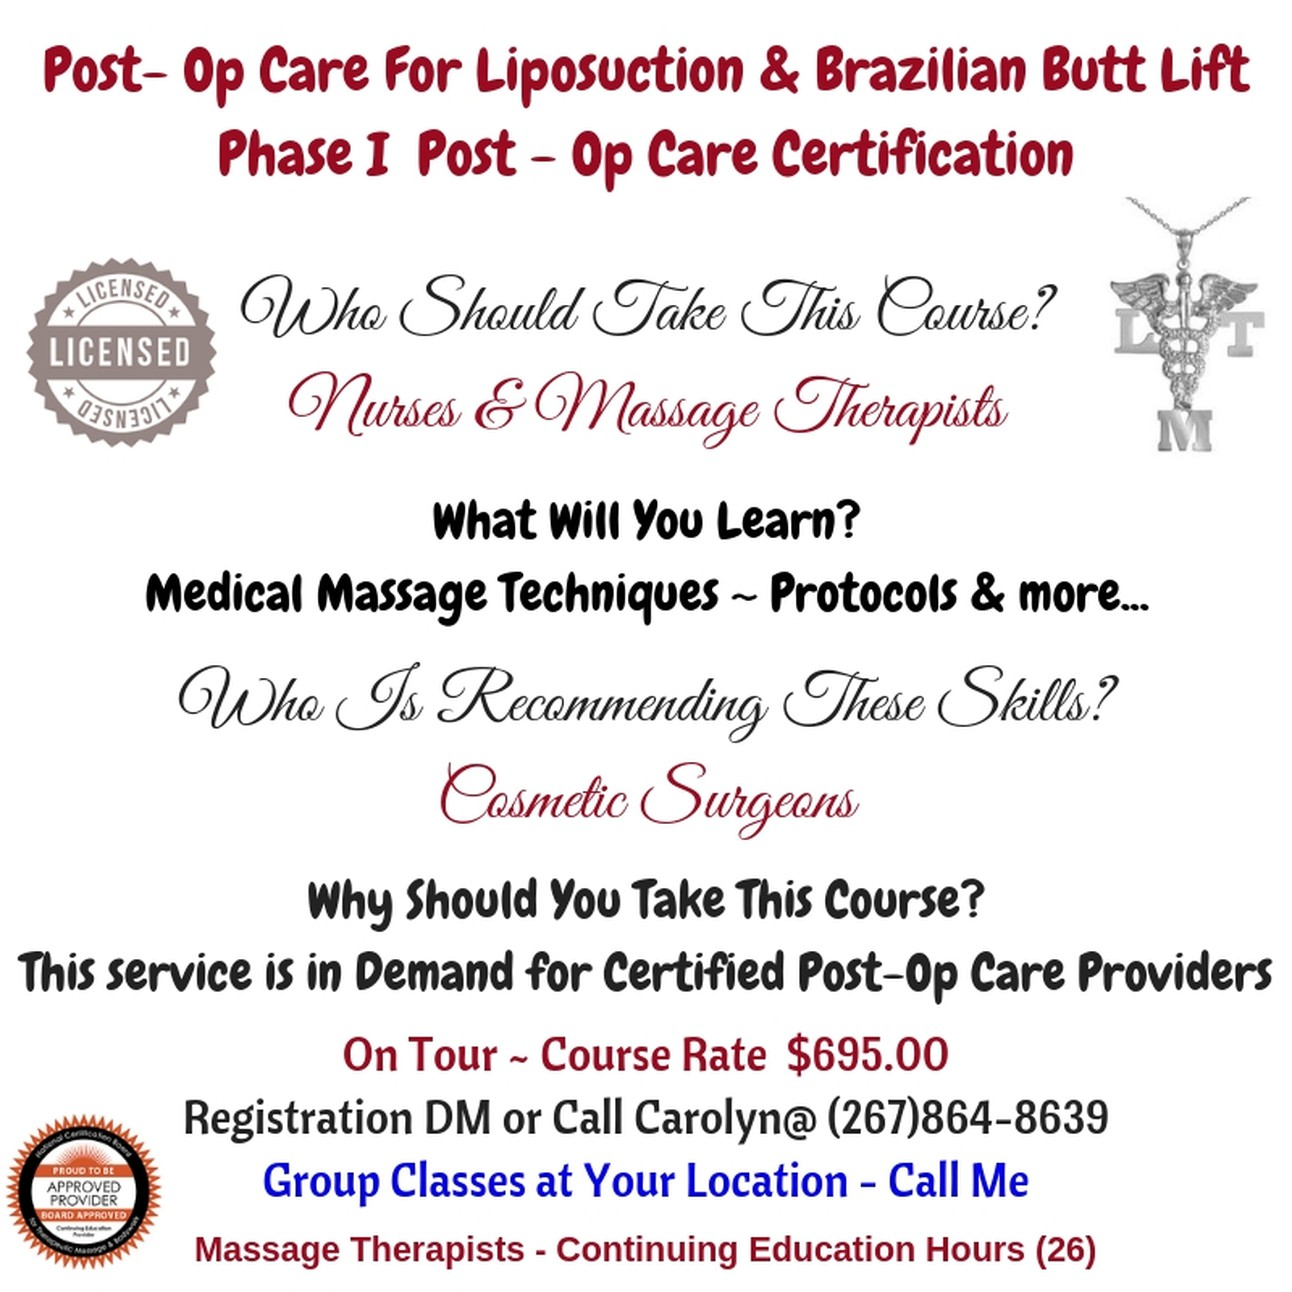 Post-Op Care Surgery Care Provider Certification Course